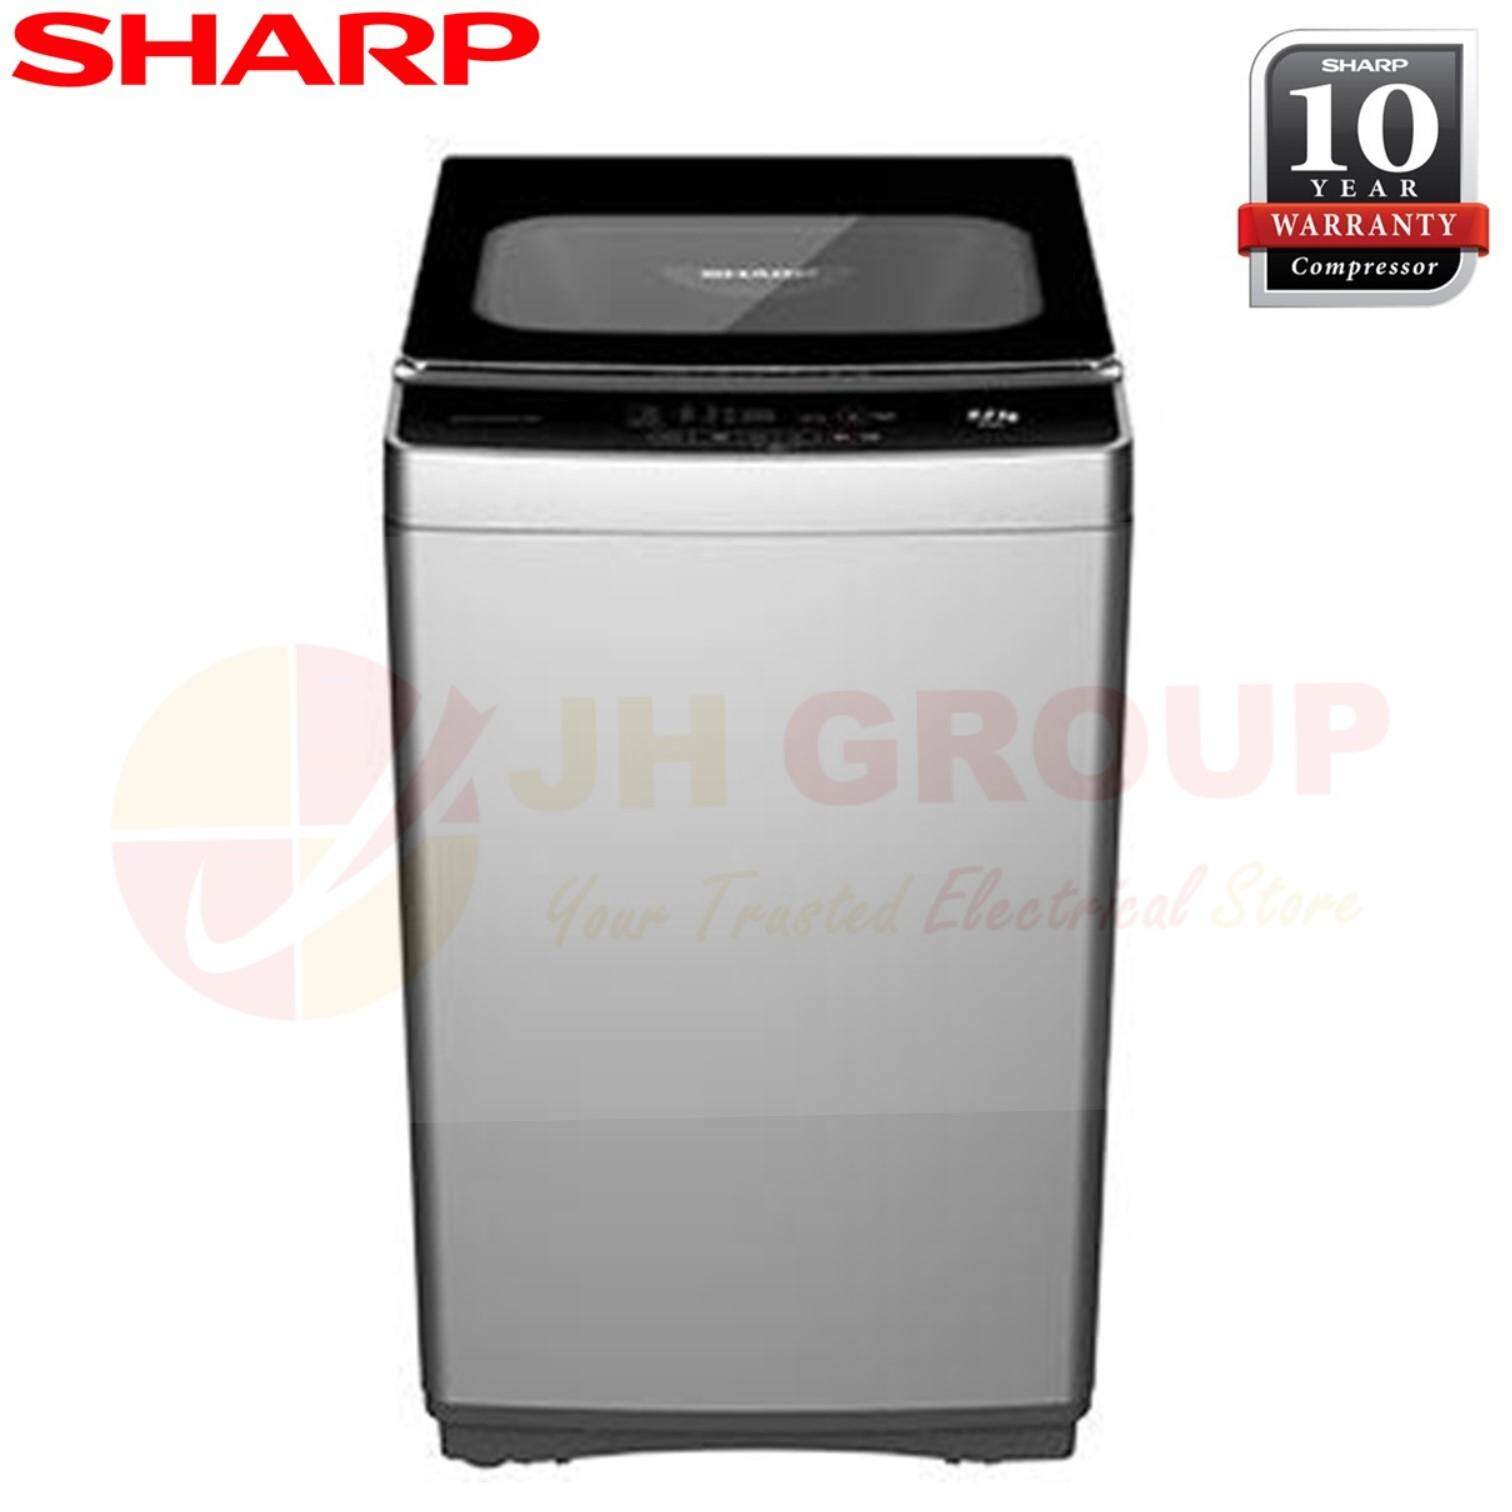 (AUTHORISED DEALER) SHARP ESX958 / ESX-958 9KG TOP LOAD WASHING MACHINE*SIMILAR AW-H1000GM